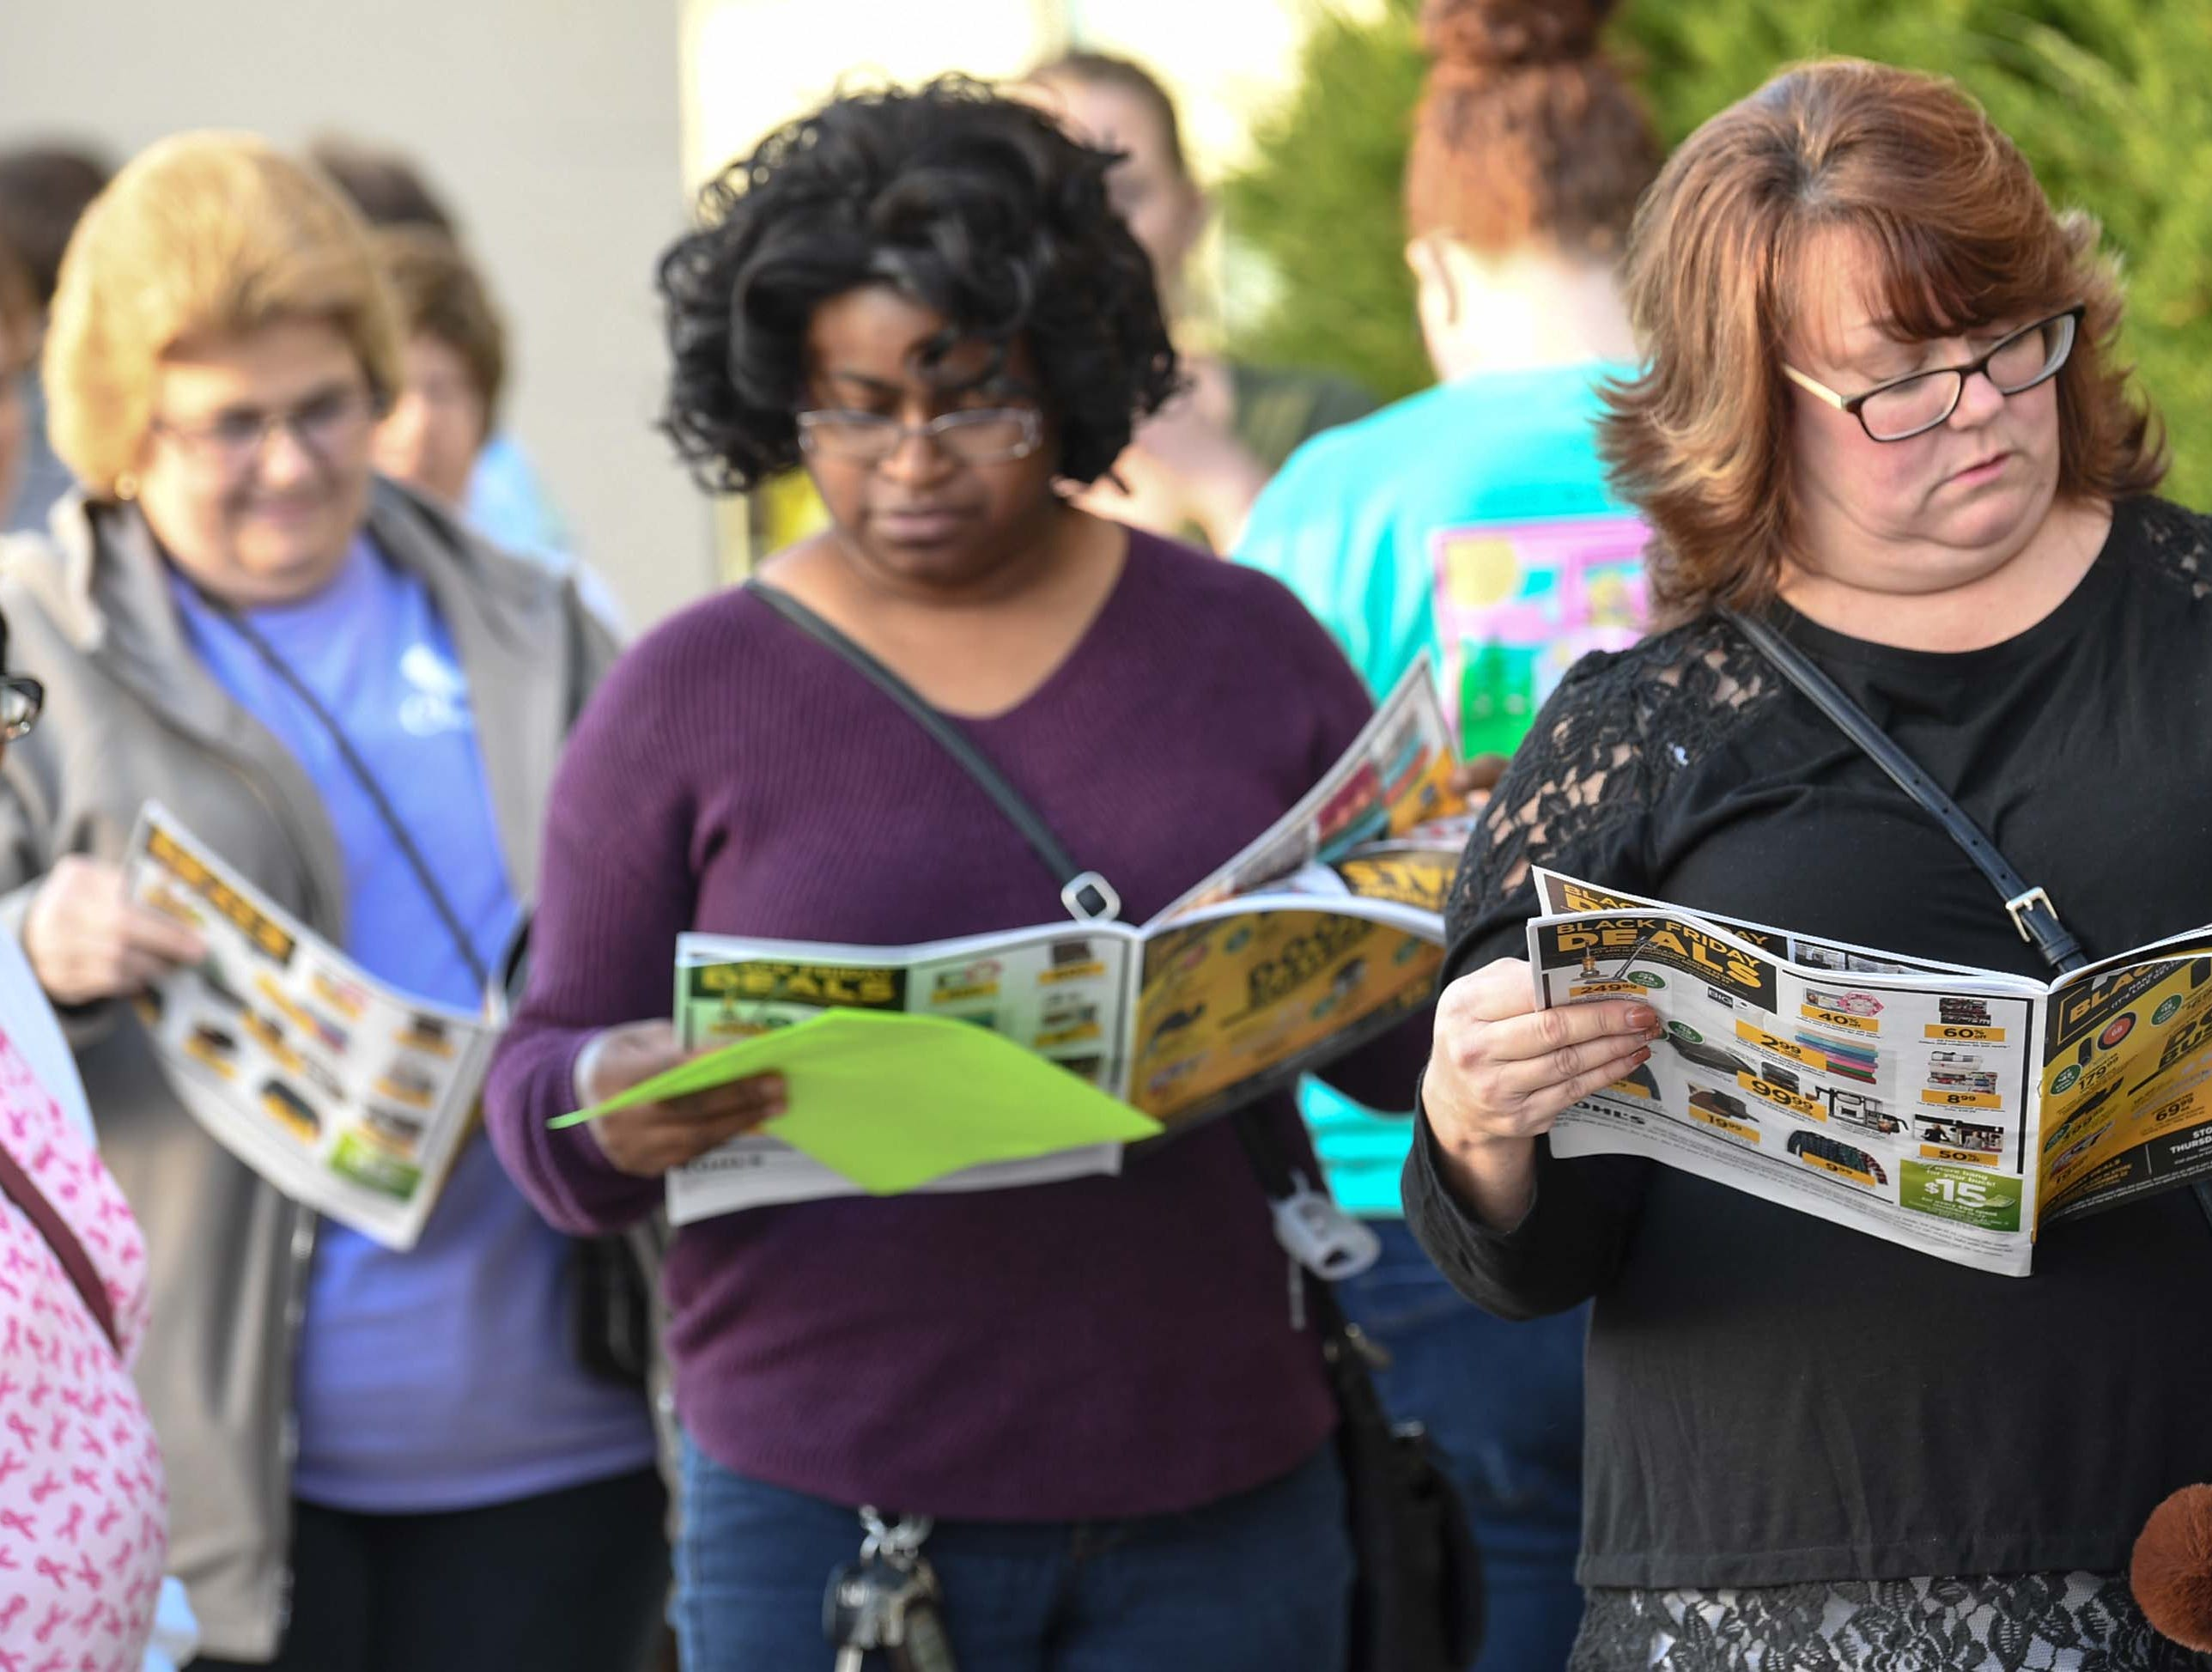 Patti Hipps, left, Sandy Glaze, and Leann Rumsey look at advertisement papers while waiting in line for doors to open for Black Friday sales at Kohl's in Anderson on Thanksgiving Day, Thursday, November 22, 2018.